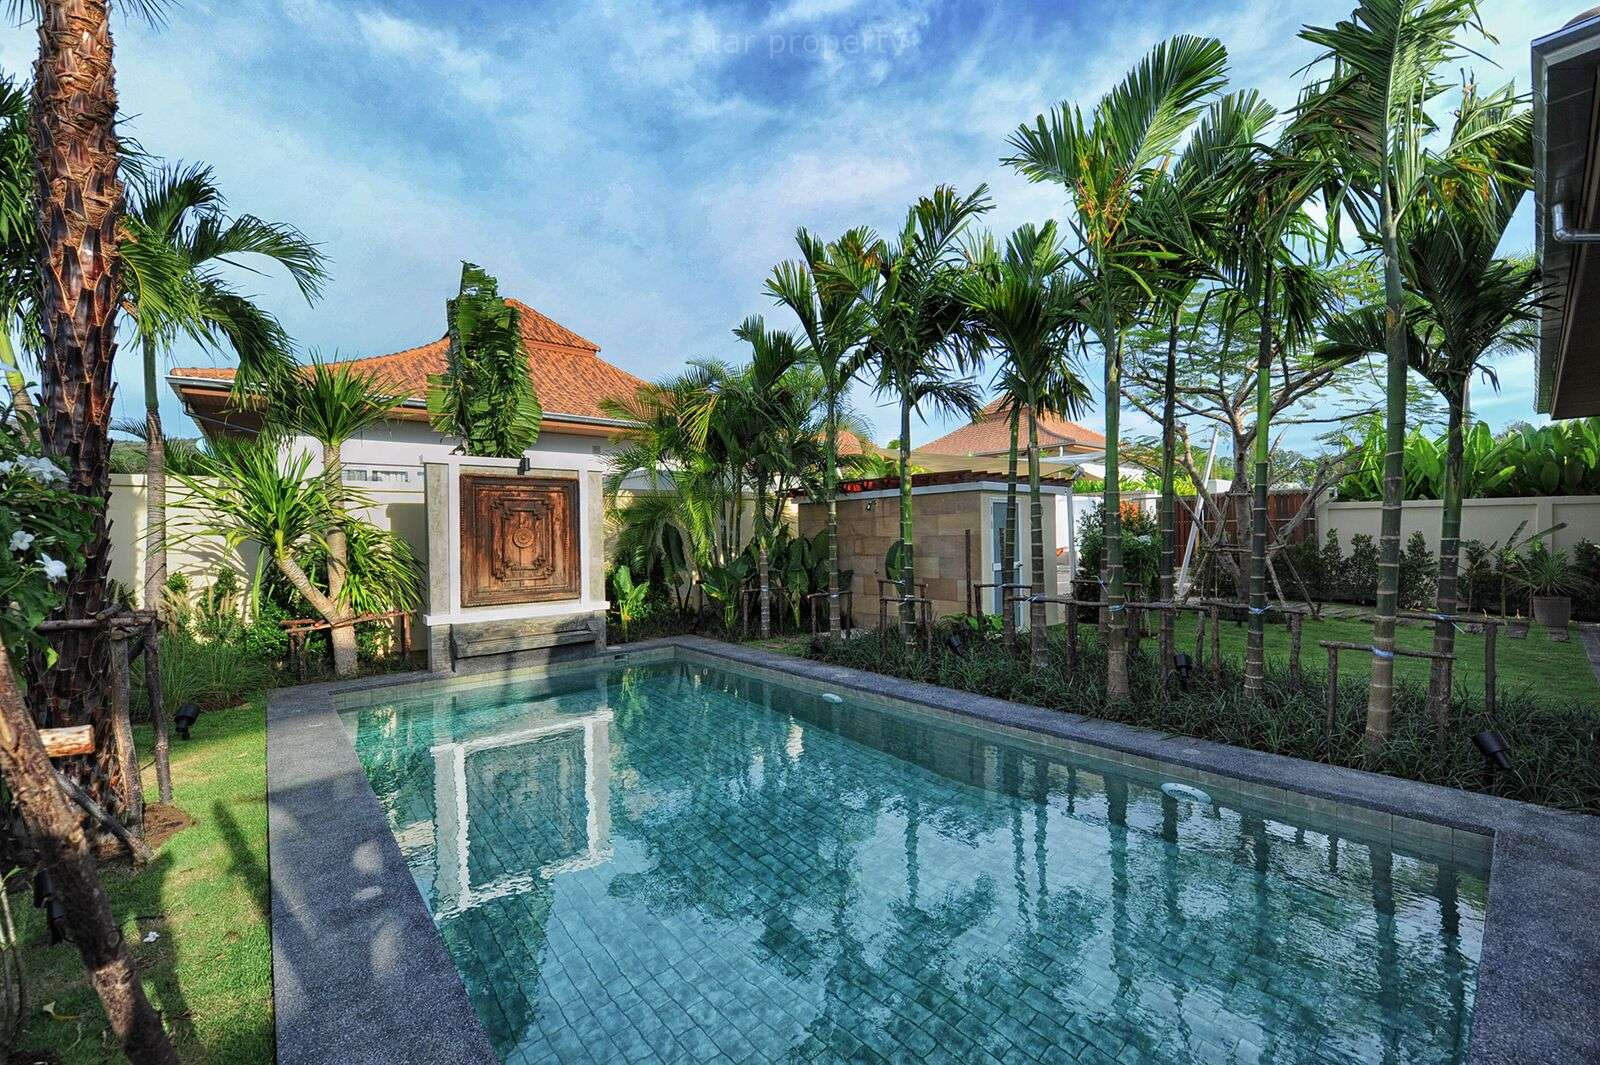 The View Soi Hua Hin Villa for rent